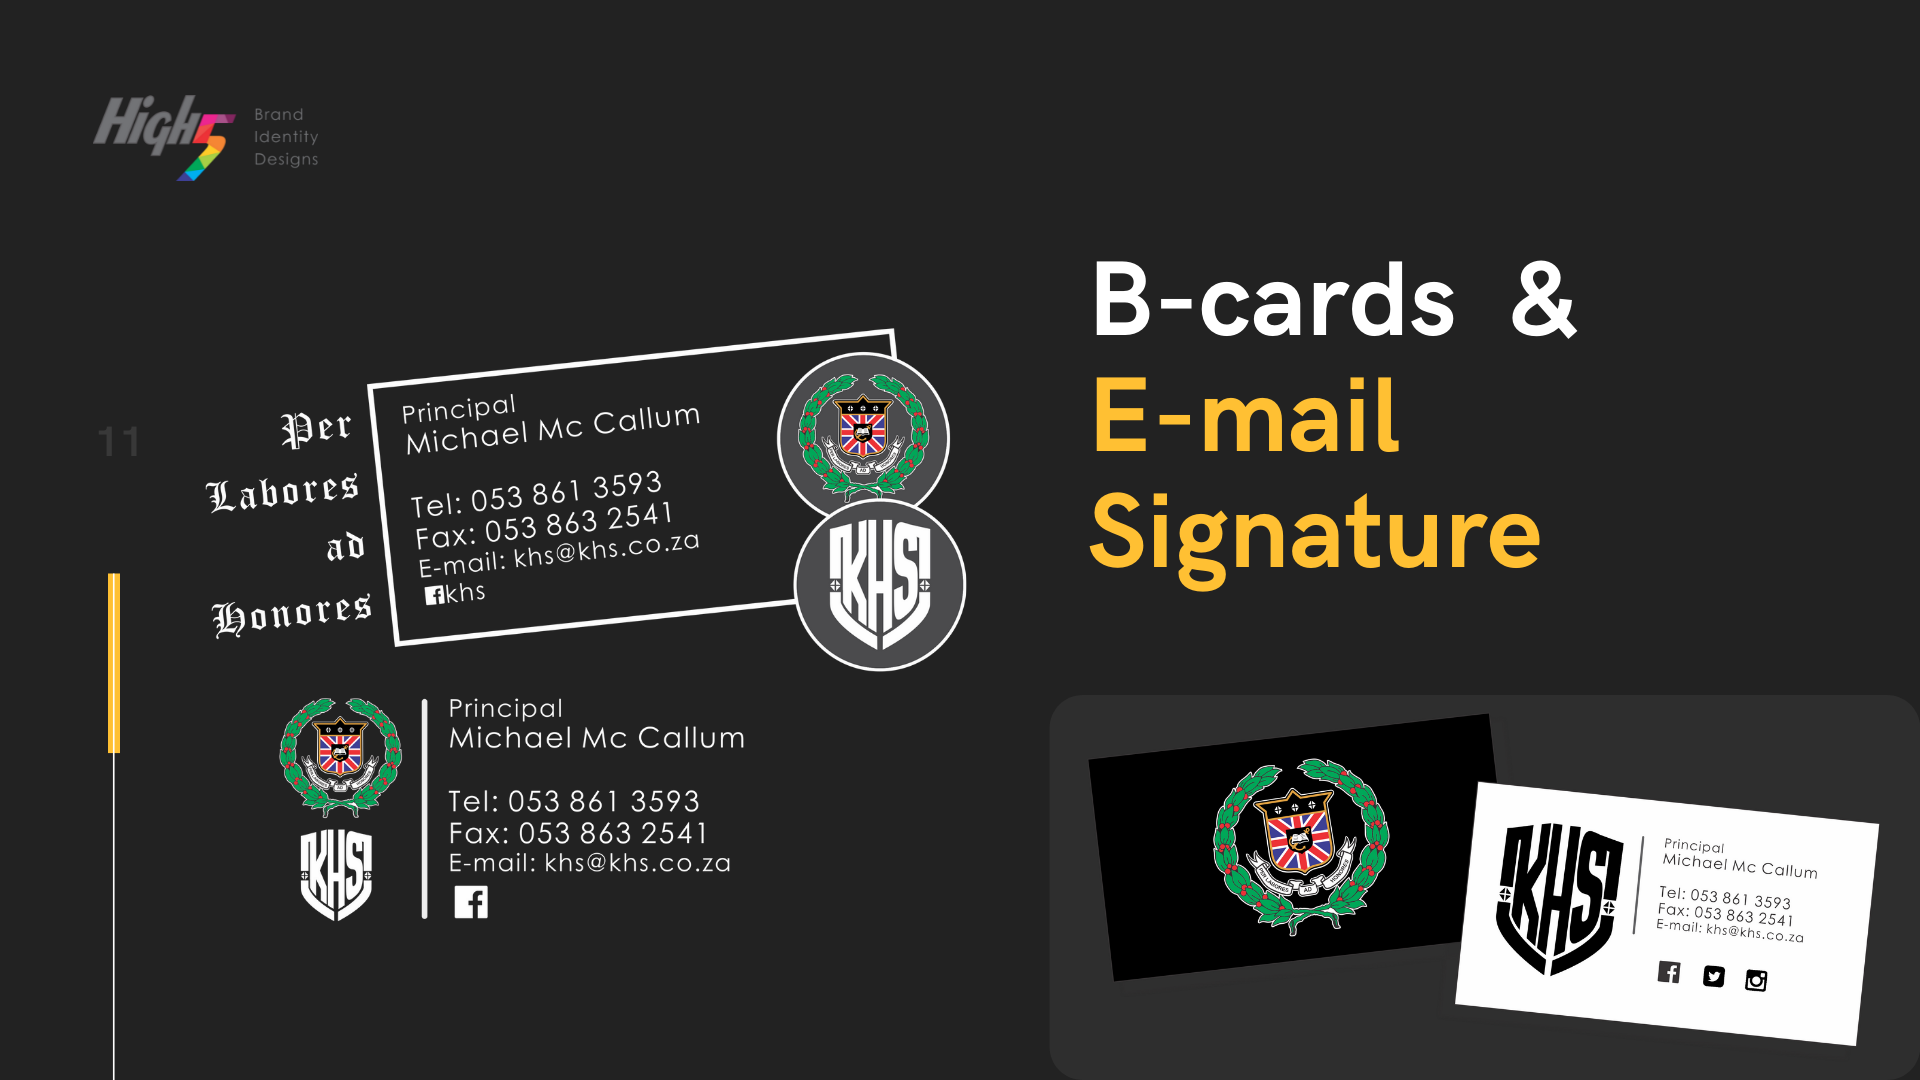 EMAIL SIGNATURE & BUSINESS CARDS